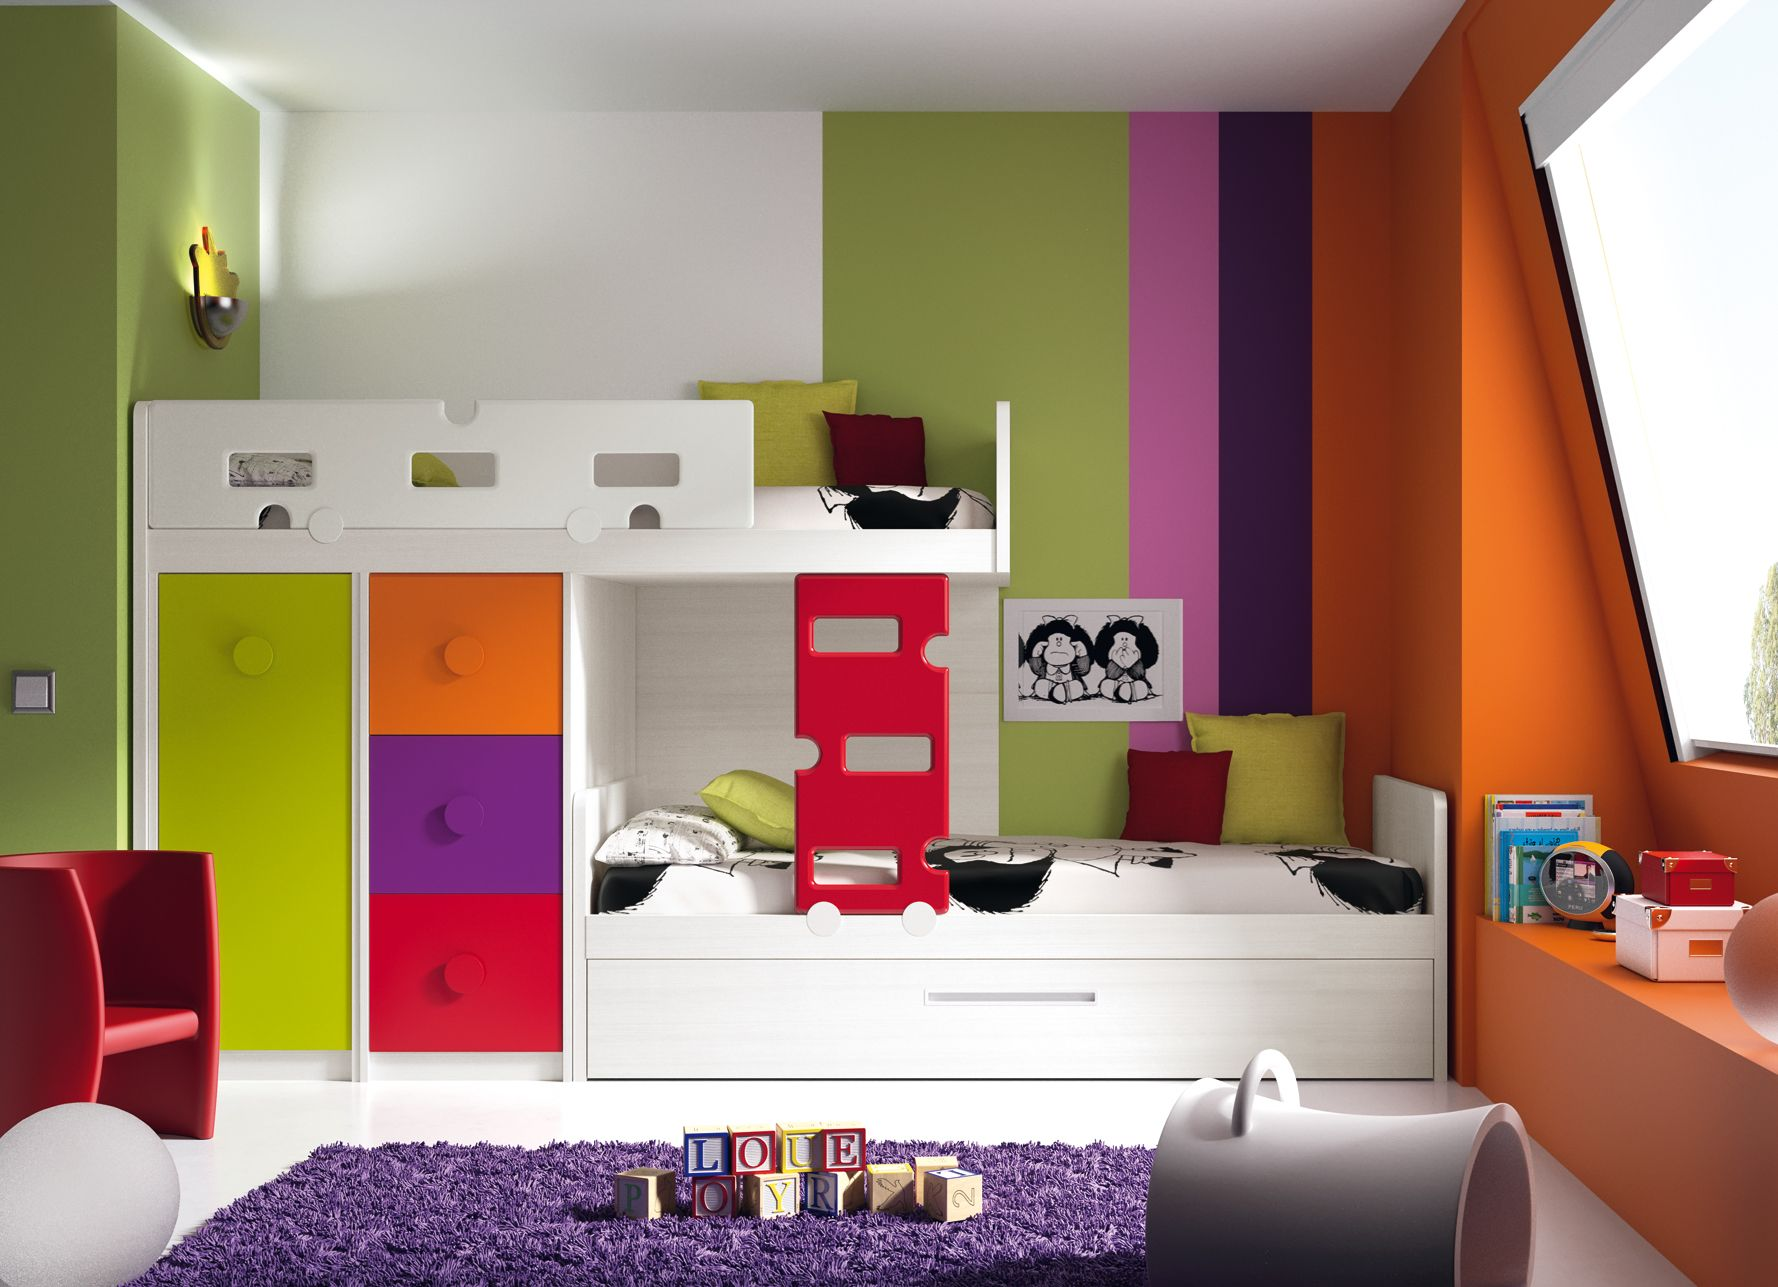 dormitorio de colores decoracin dormitorio decor bedroom